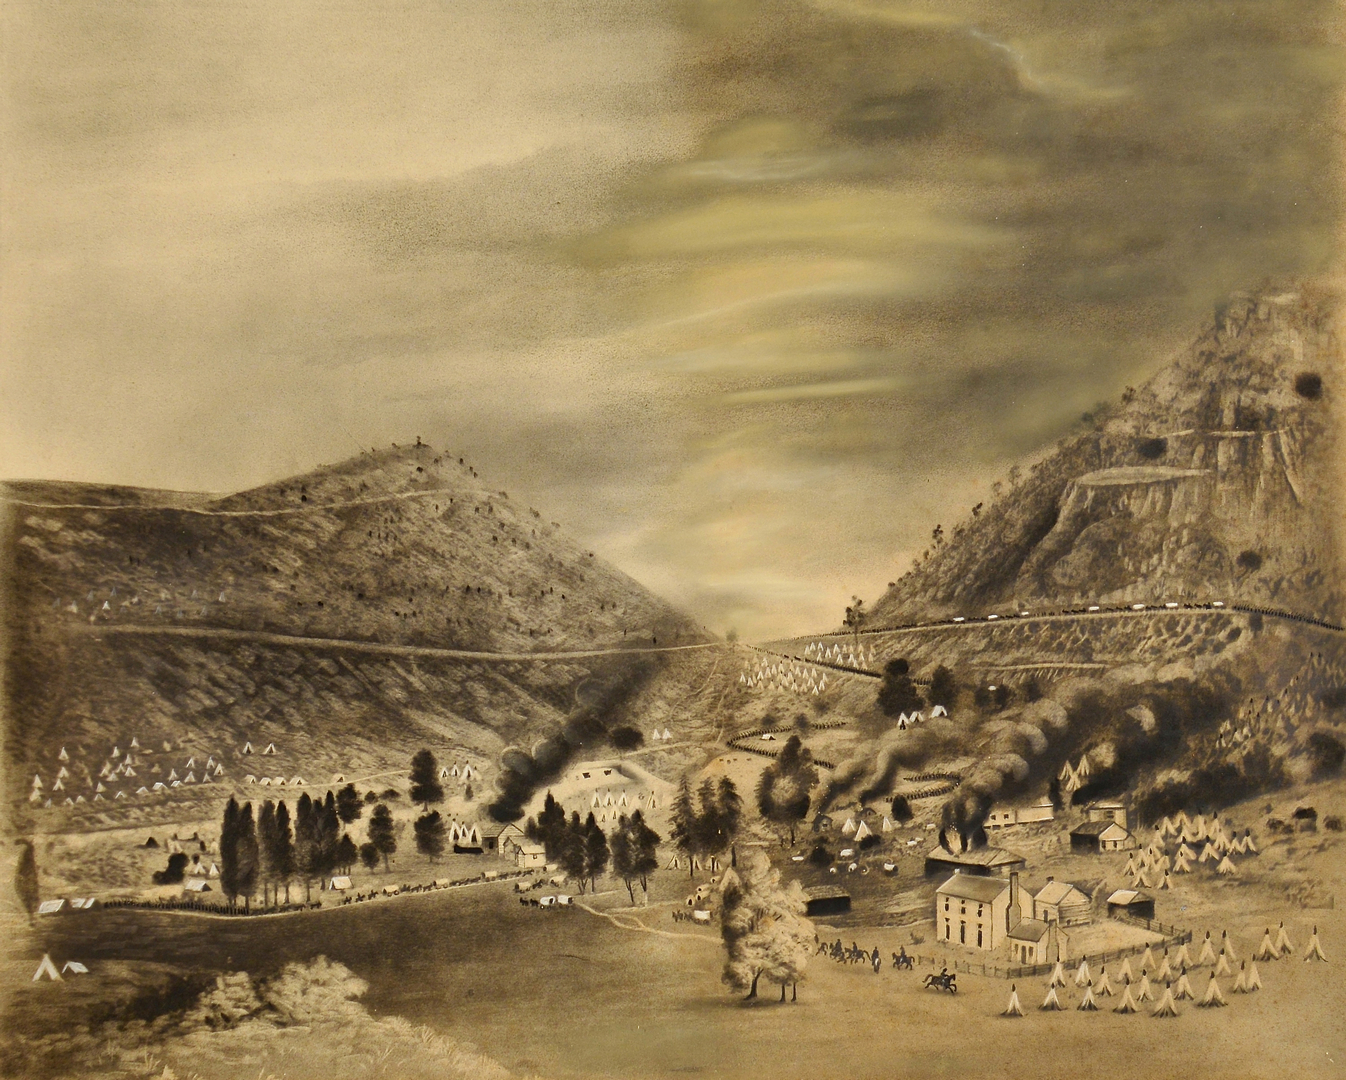 Auctions In Ohio >> Lot 549: Pastel/Charcoal Battle of Cumberland Gap, Union Ev